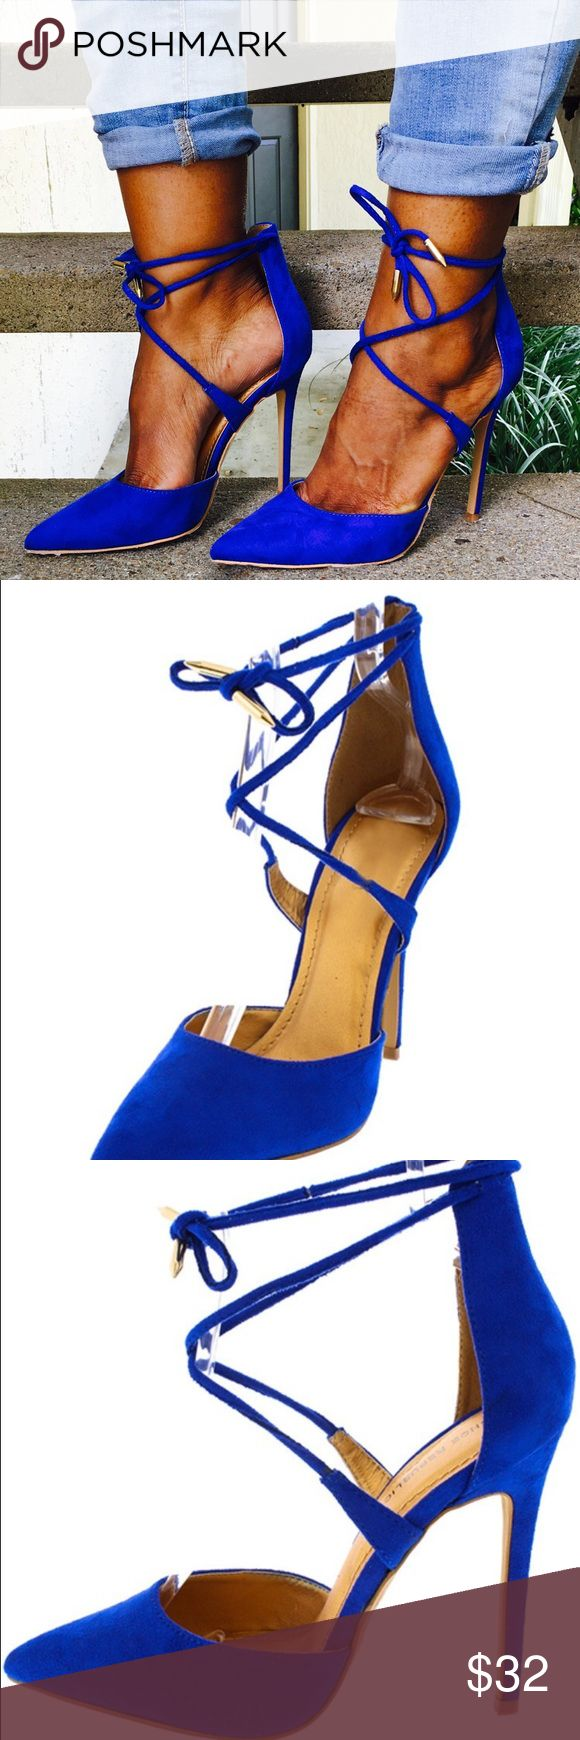 Christmas sale Cobalt Blue Strappy Heel Features a pointed toe and gold tipped lace up ankle closure Single sole and stiletto heel Man made materials. Approximate heel height 4 1/2 inches.   SHIPS SAME DAY/NEXT DAY . Shoes Heels